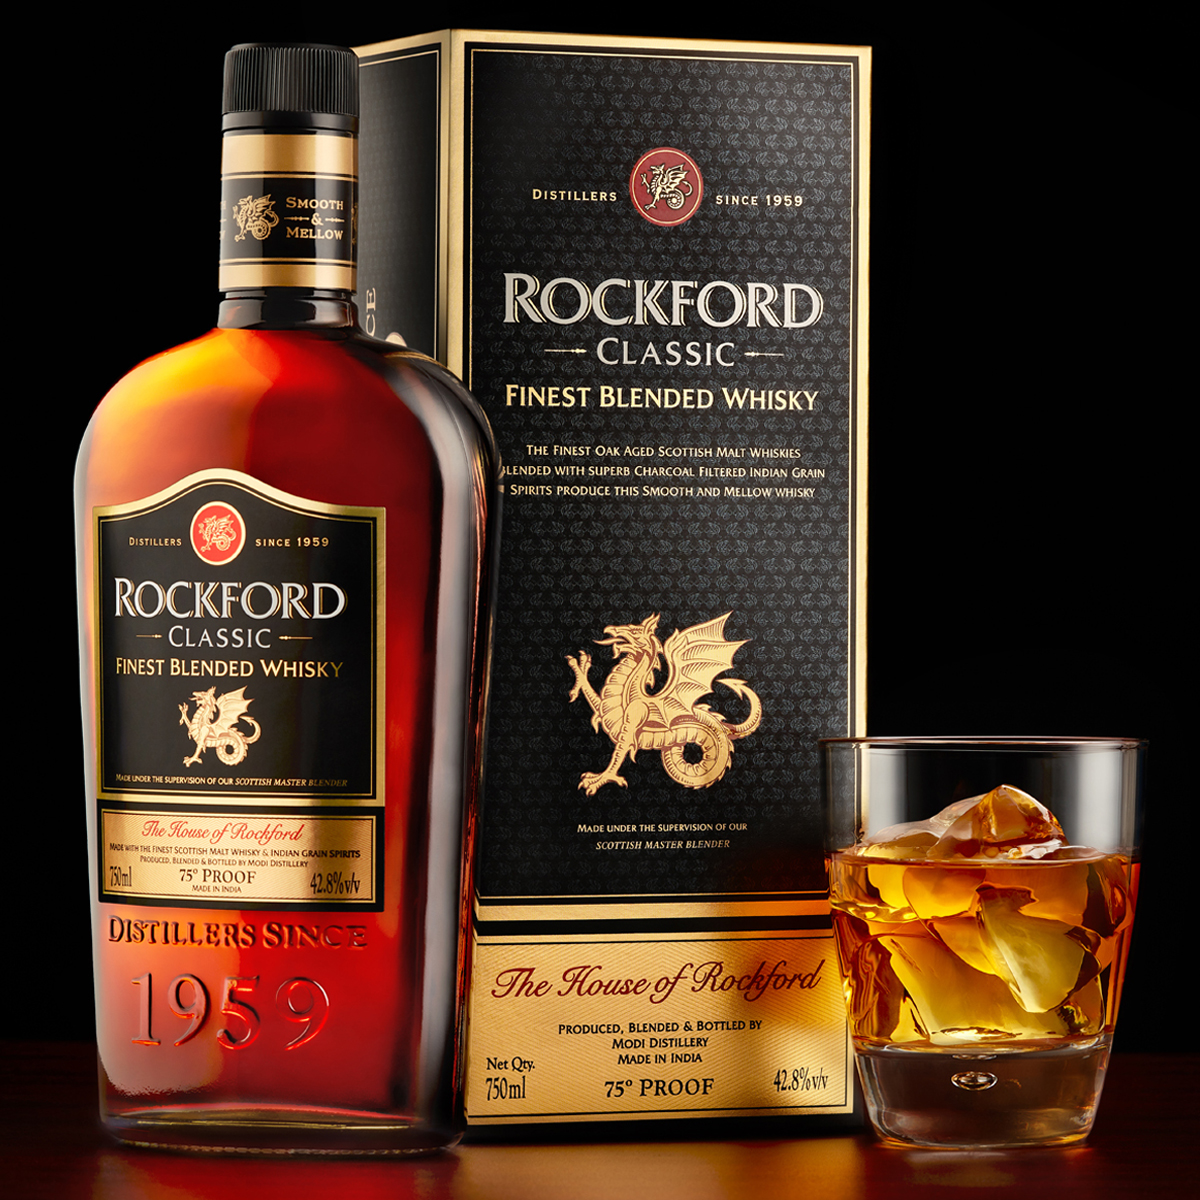 Rockford Whisky